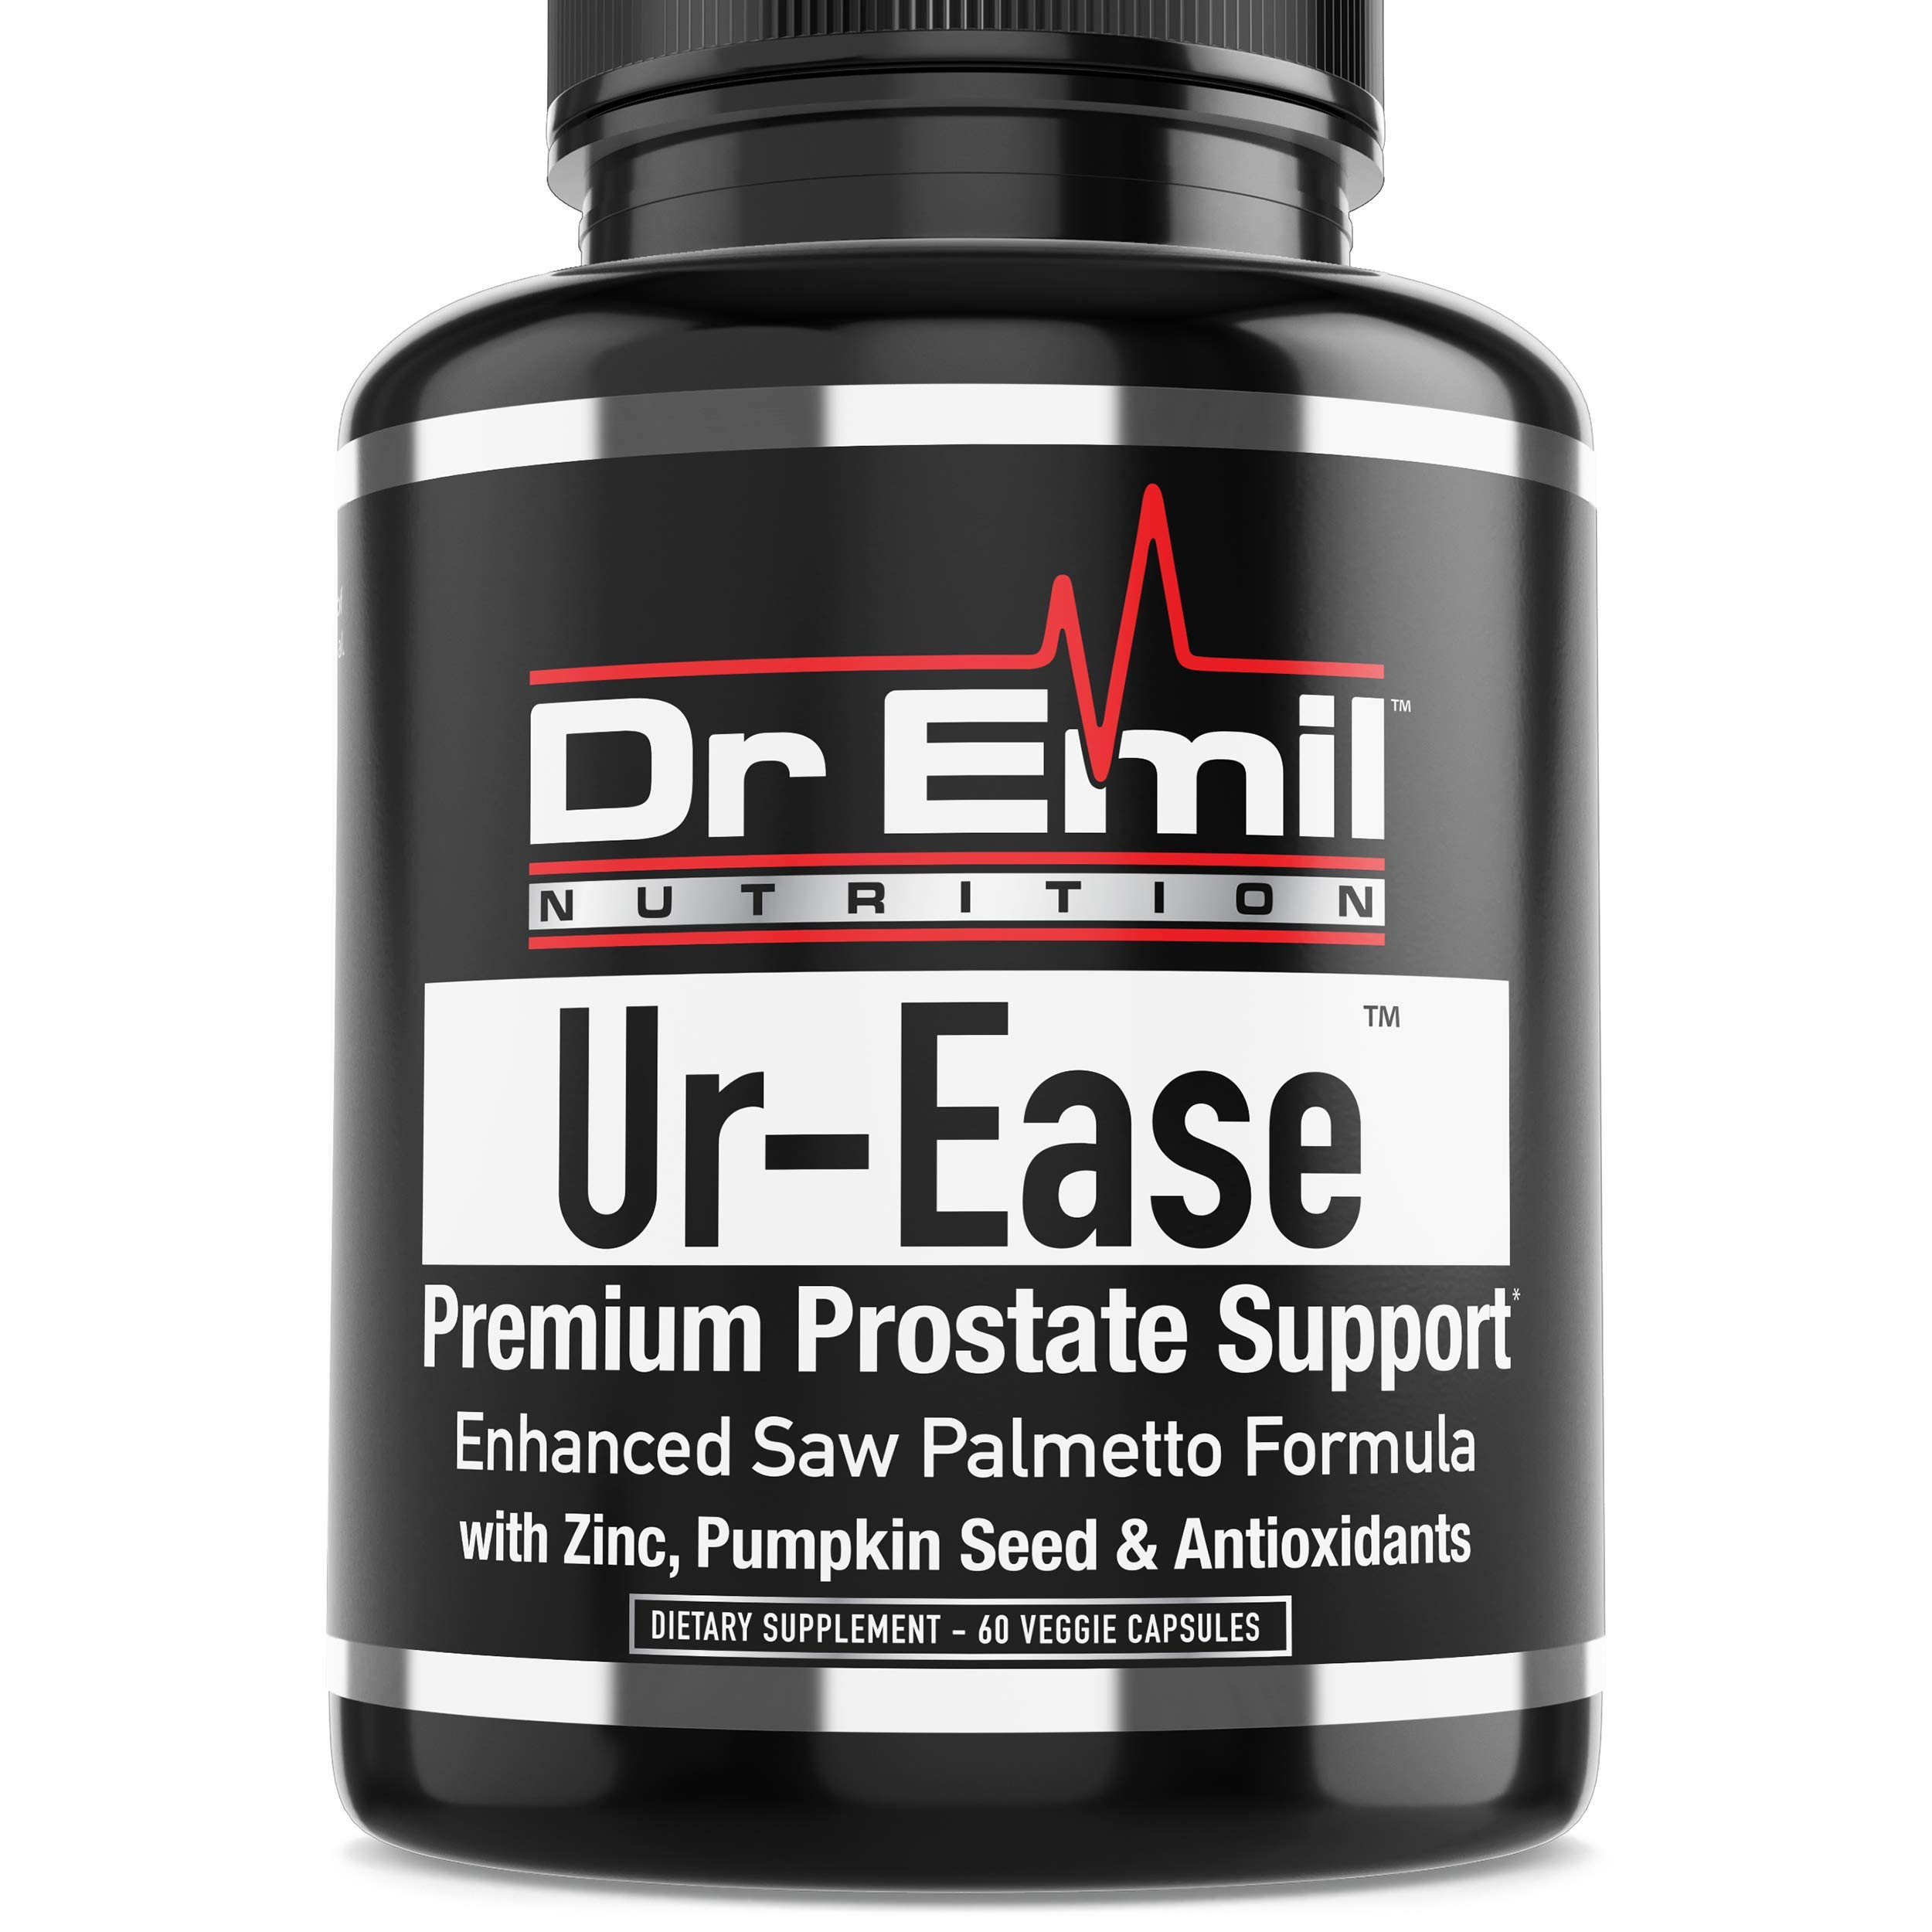 Dr. Emil's UR-Ease - Prostate Support w/Saw Palmetto & Potent Antioxidants - Prostate Health Supplement for Frequent Urination & Bladder Control (60 Veggie Capsules)